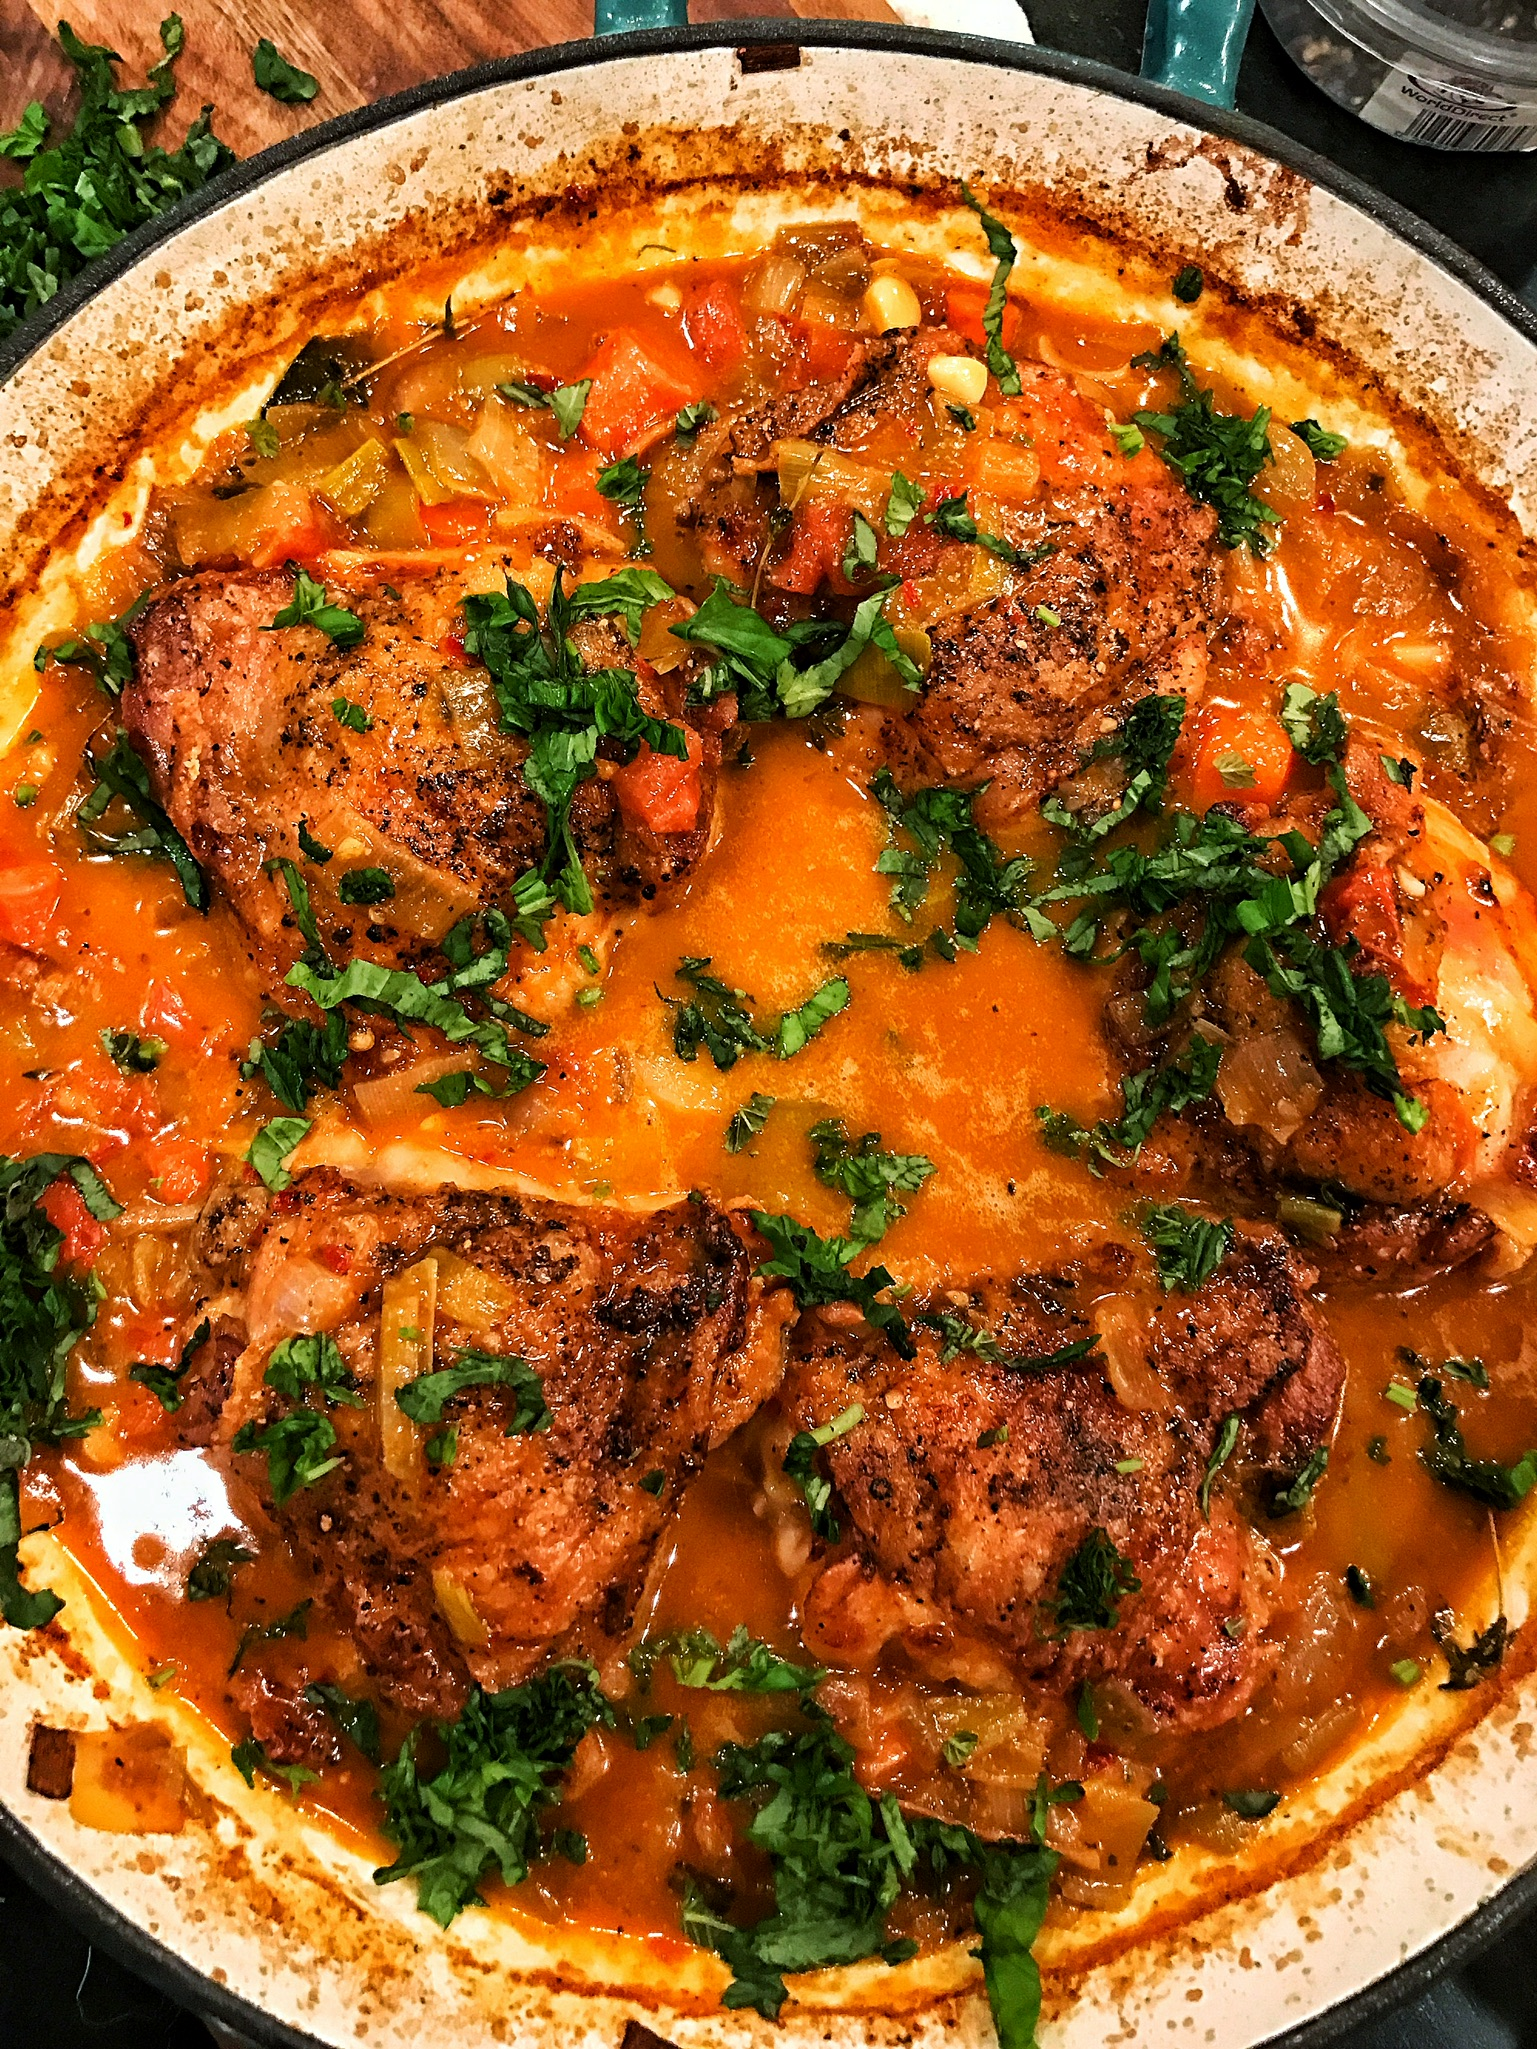 Chardonnay Braised Chicken Thighs